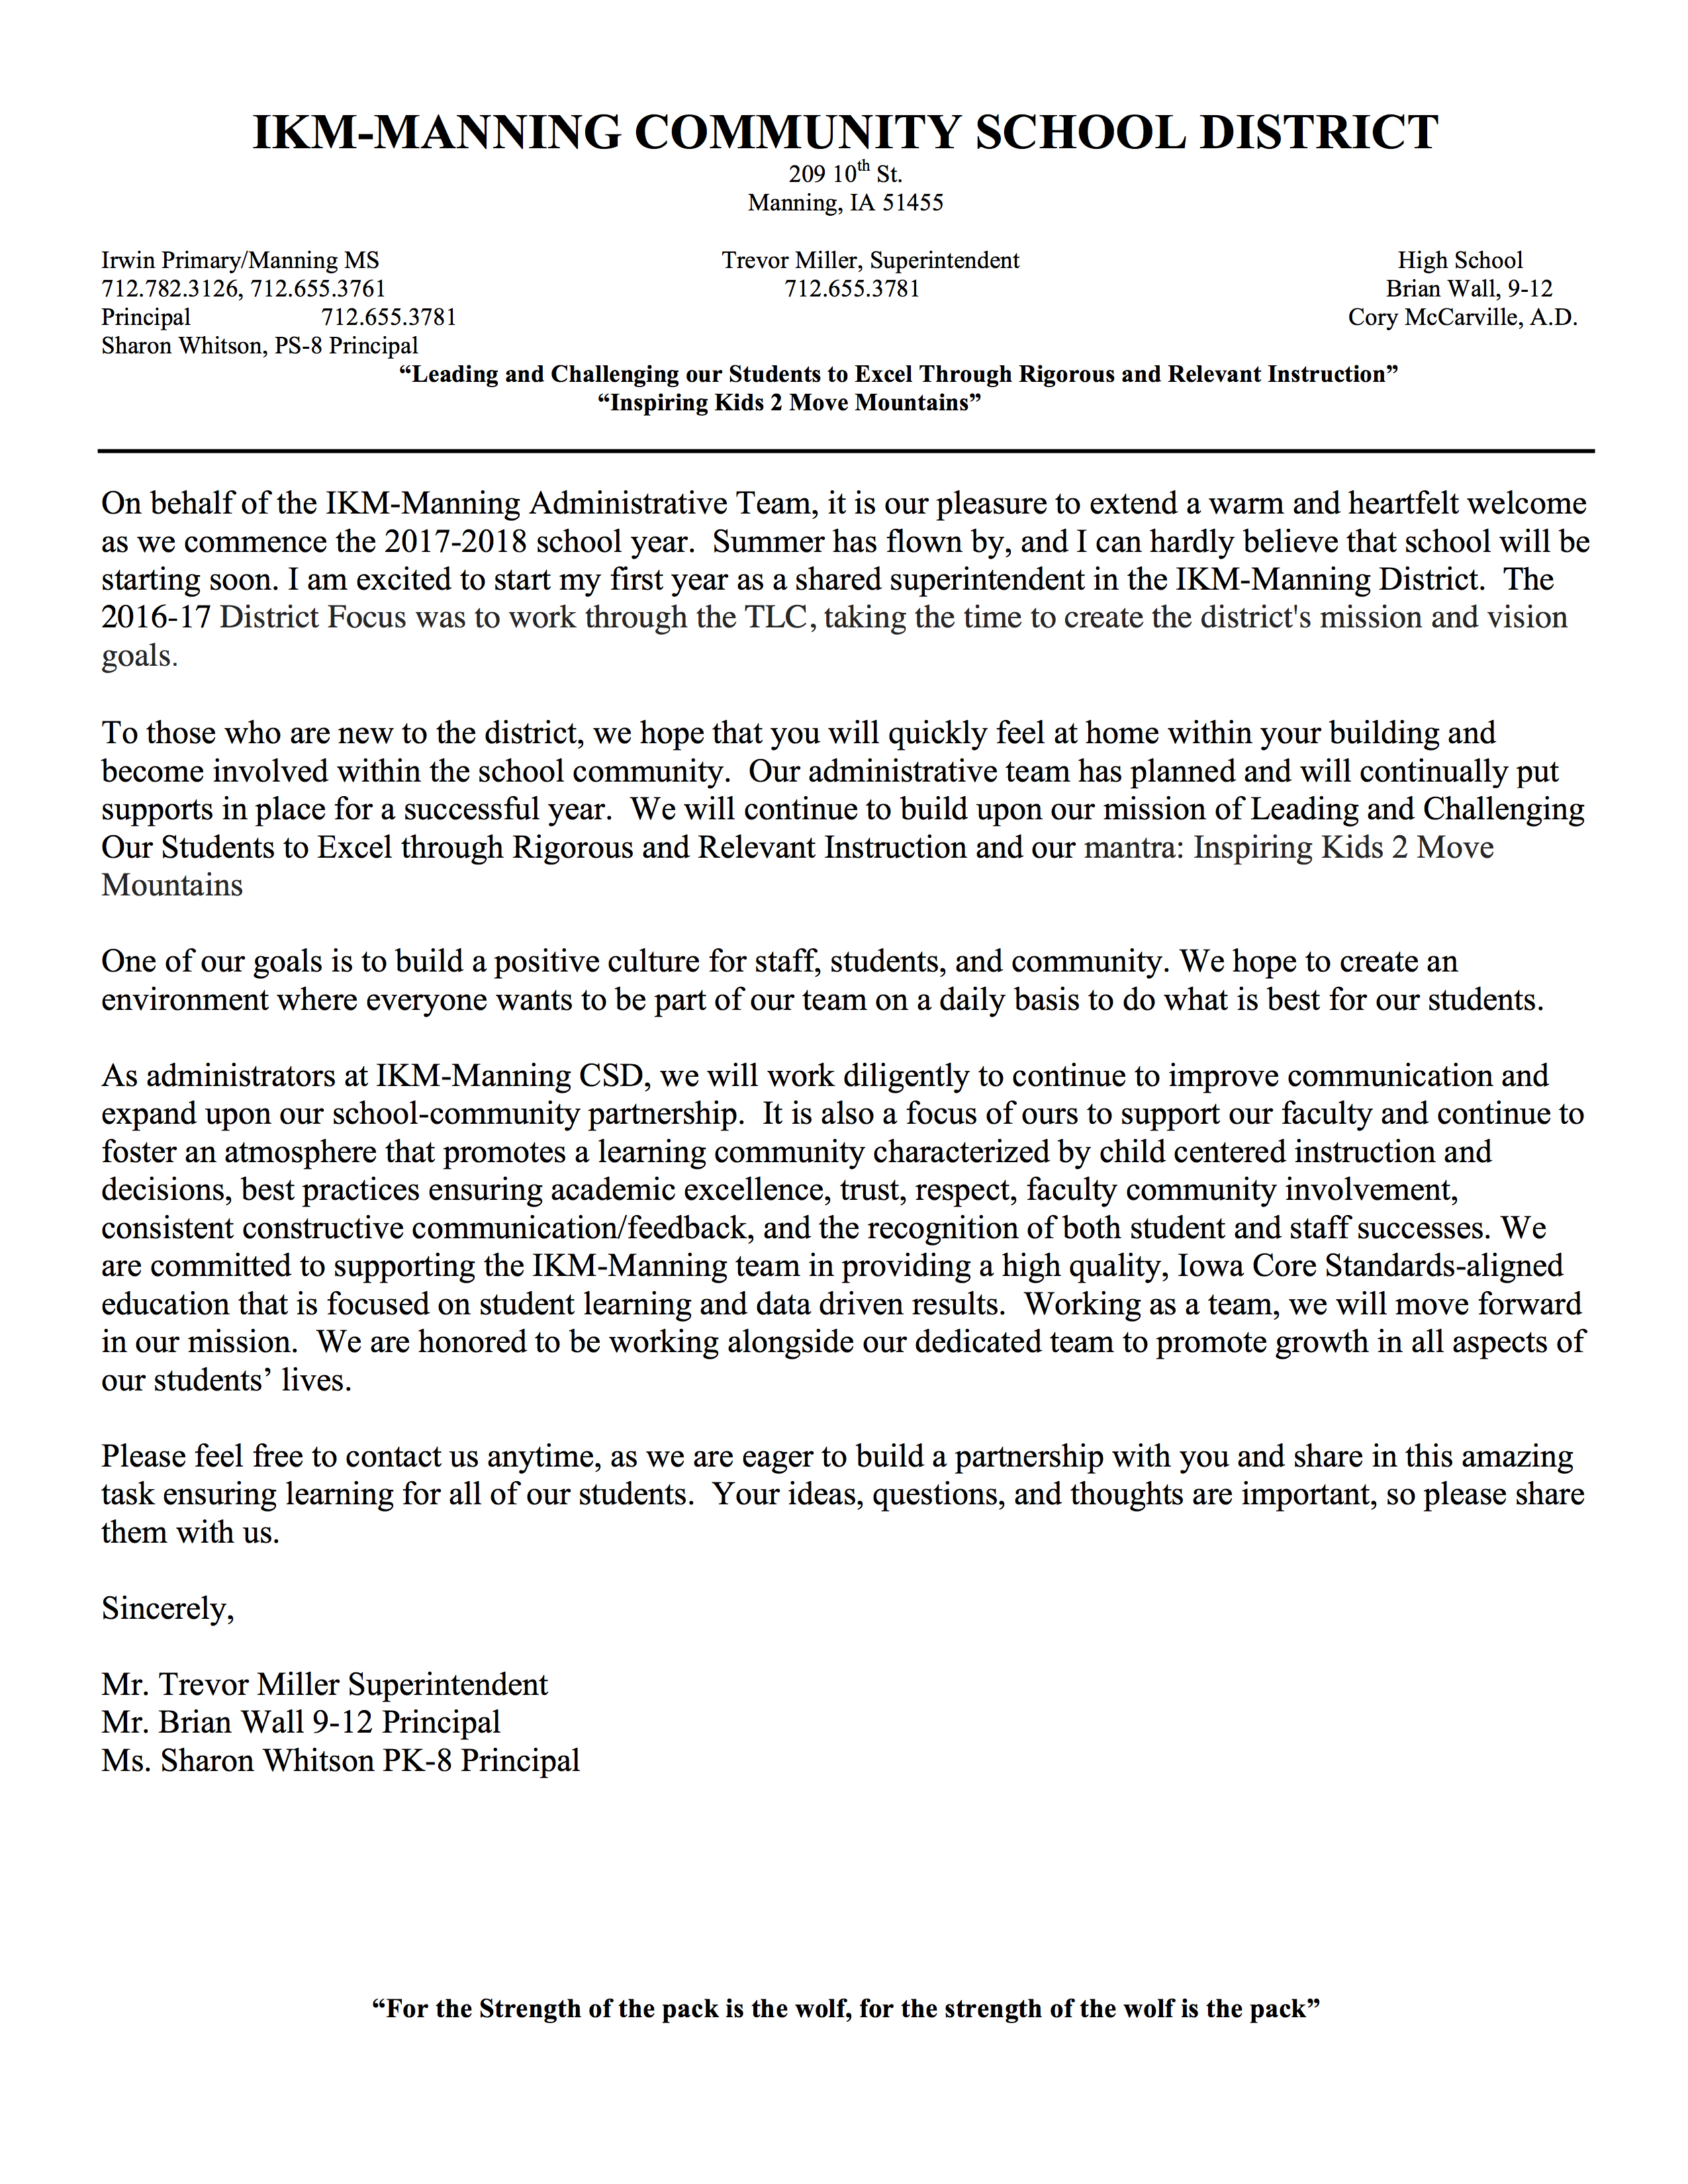 Welcome To The Team Letter from www.ikm-manning.k12.ia.us